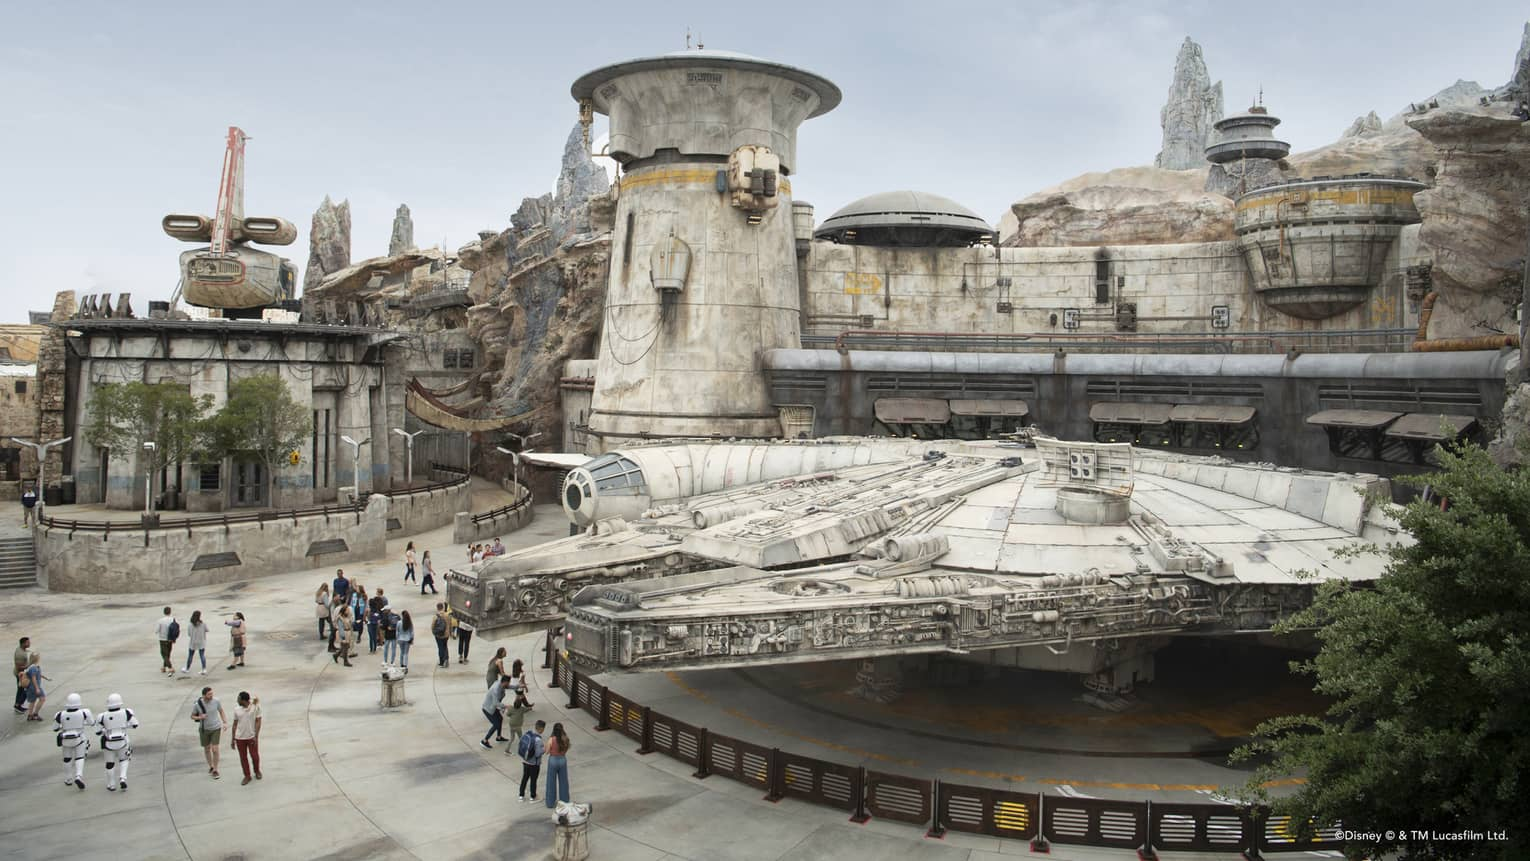 a replication of the Millennium Falcon at Star Wars Galaxy's Edge